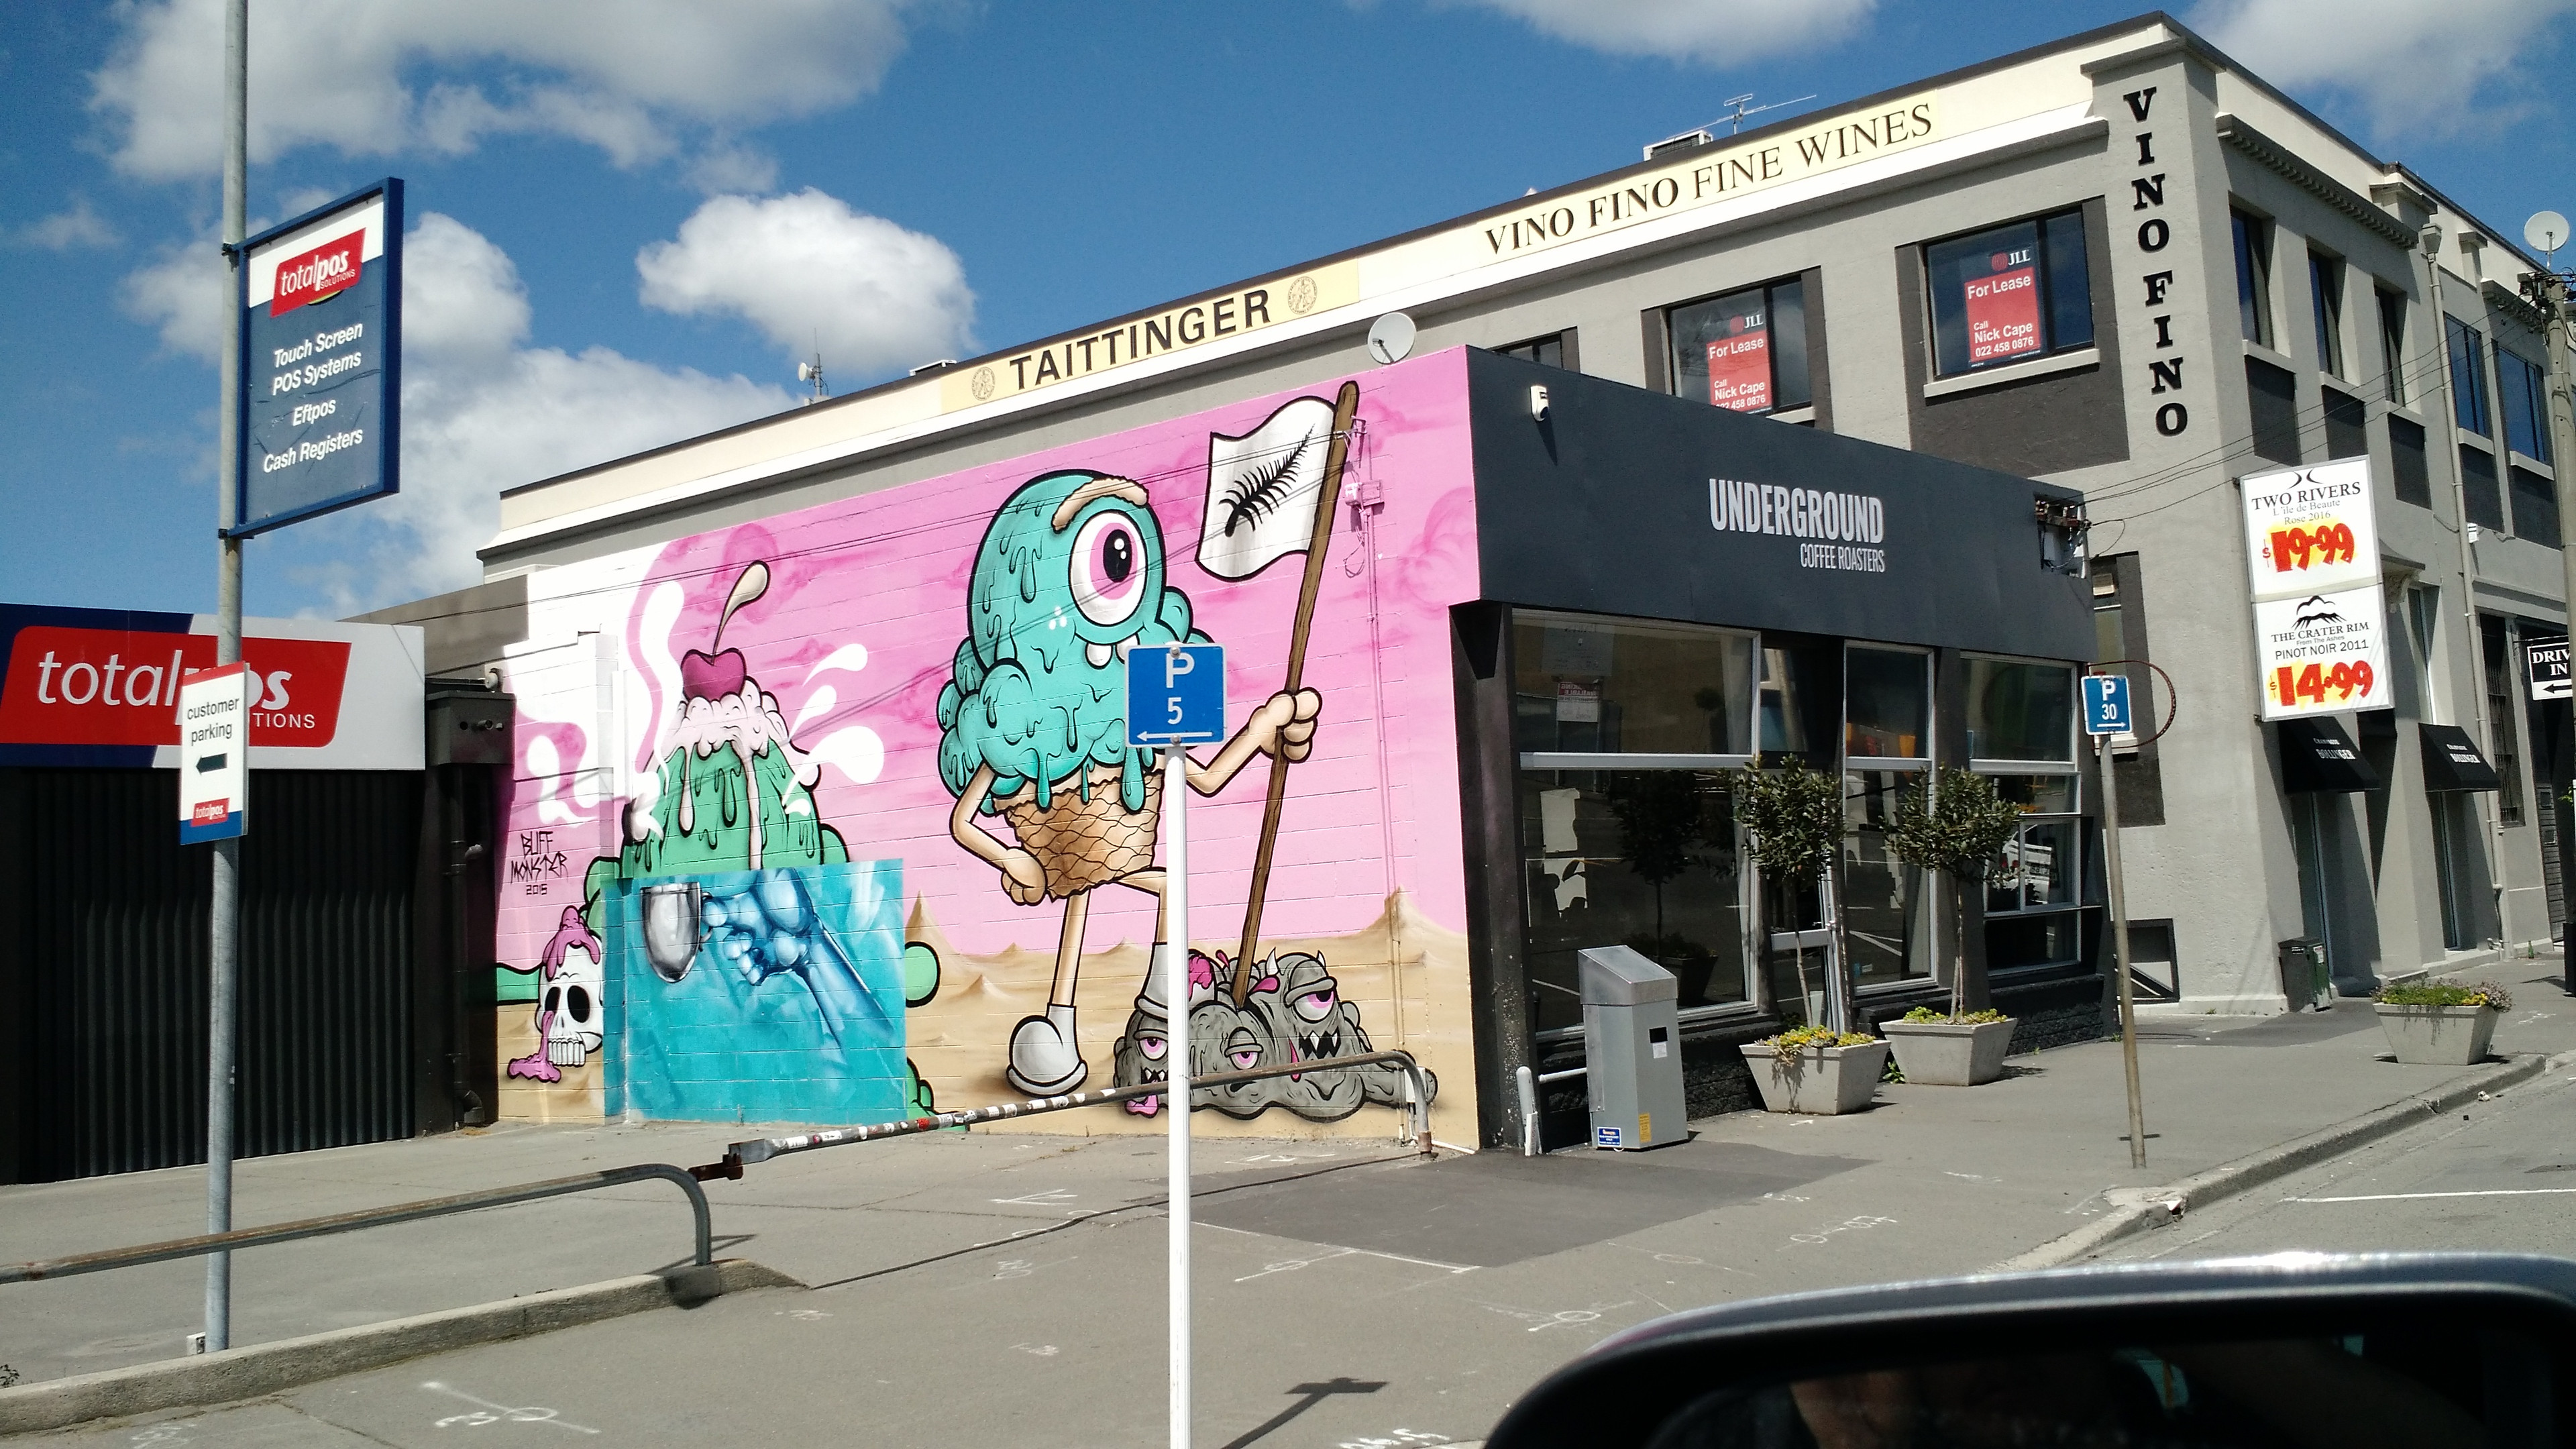 """(Its not the best pic, but it looks good) The original paint on Christchurch by """"Buff Monster"""""""